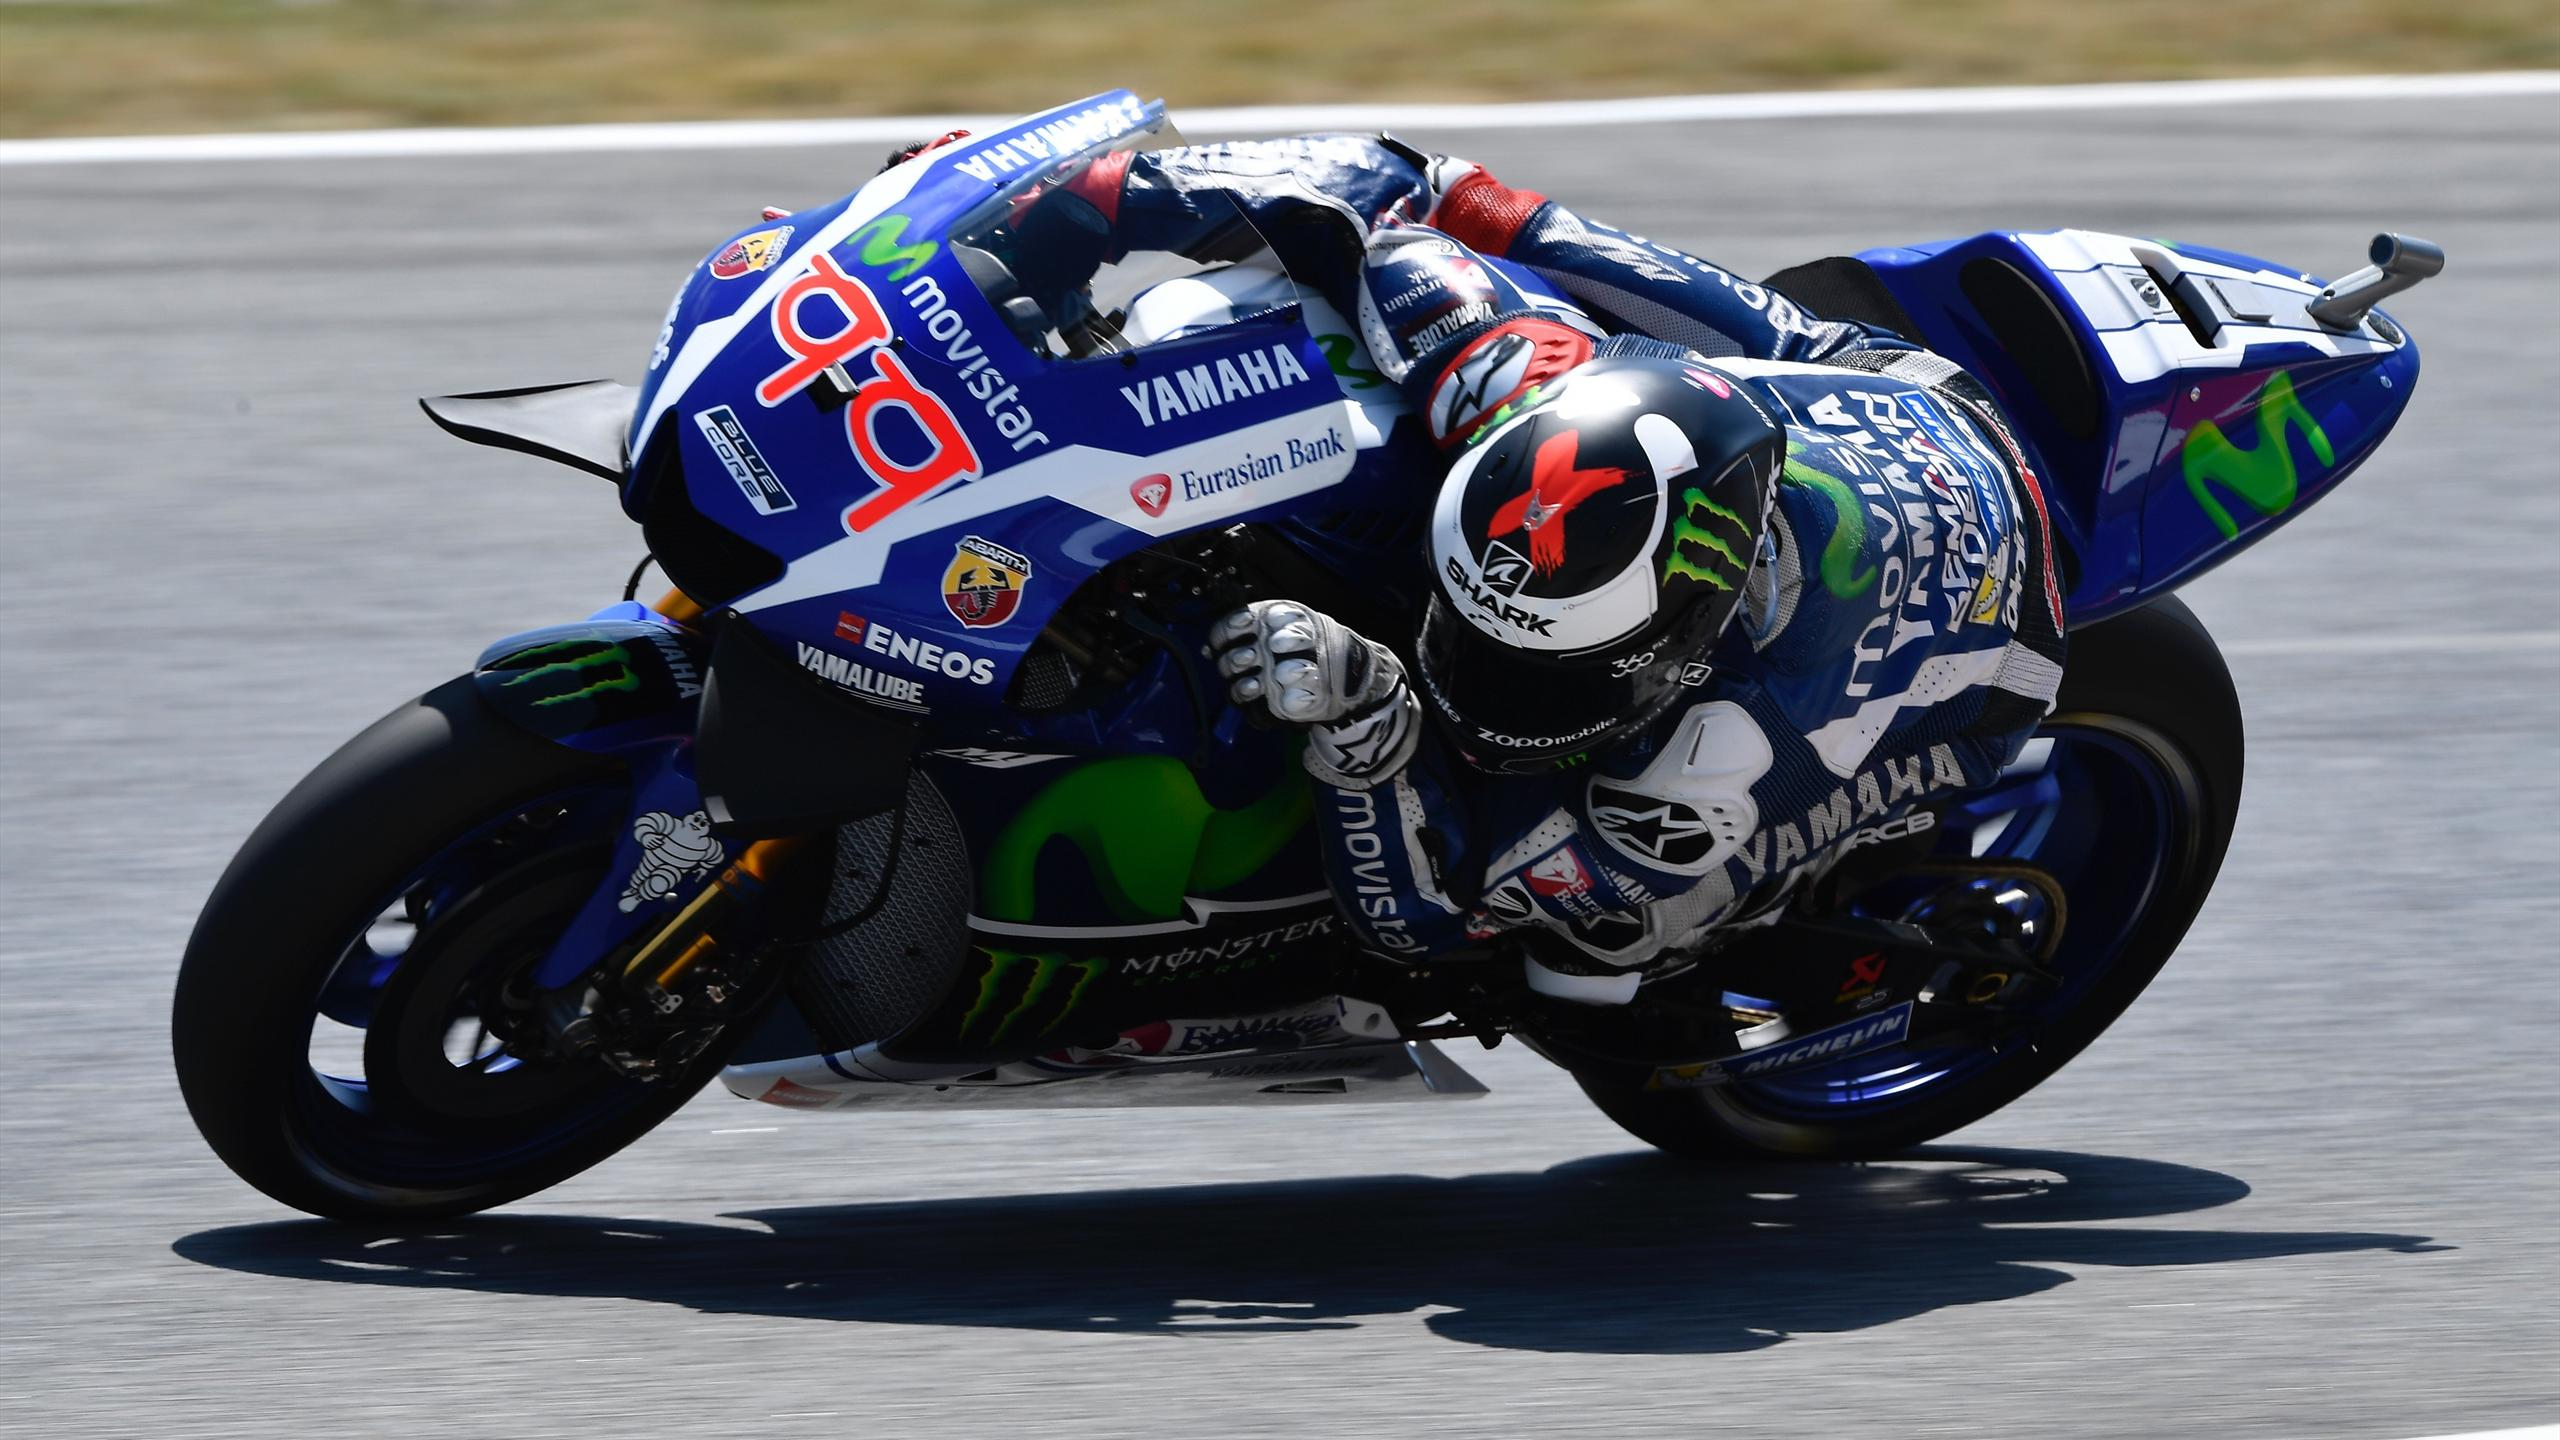 Jorge Lorenzo (Yamaha Factory) - GP of Catalunya 2016